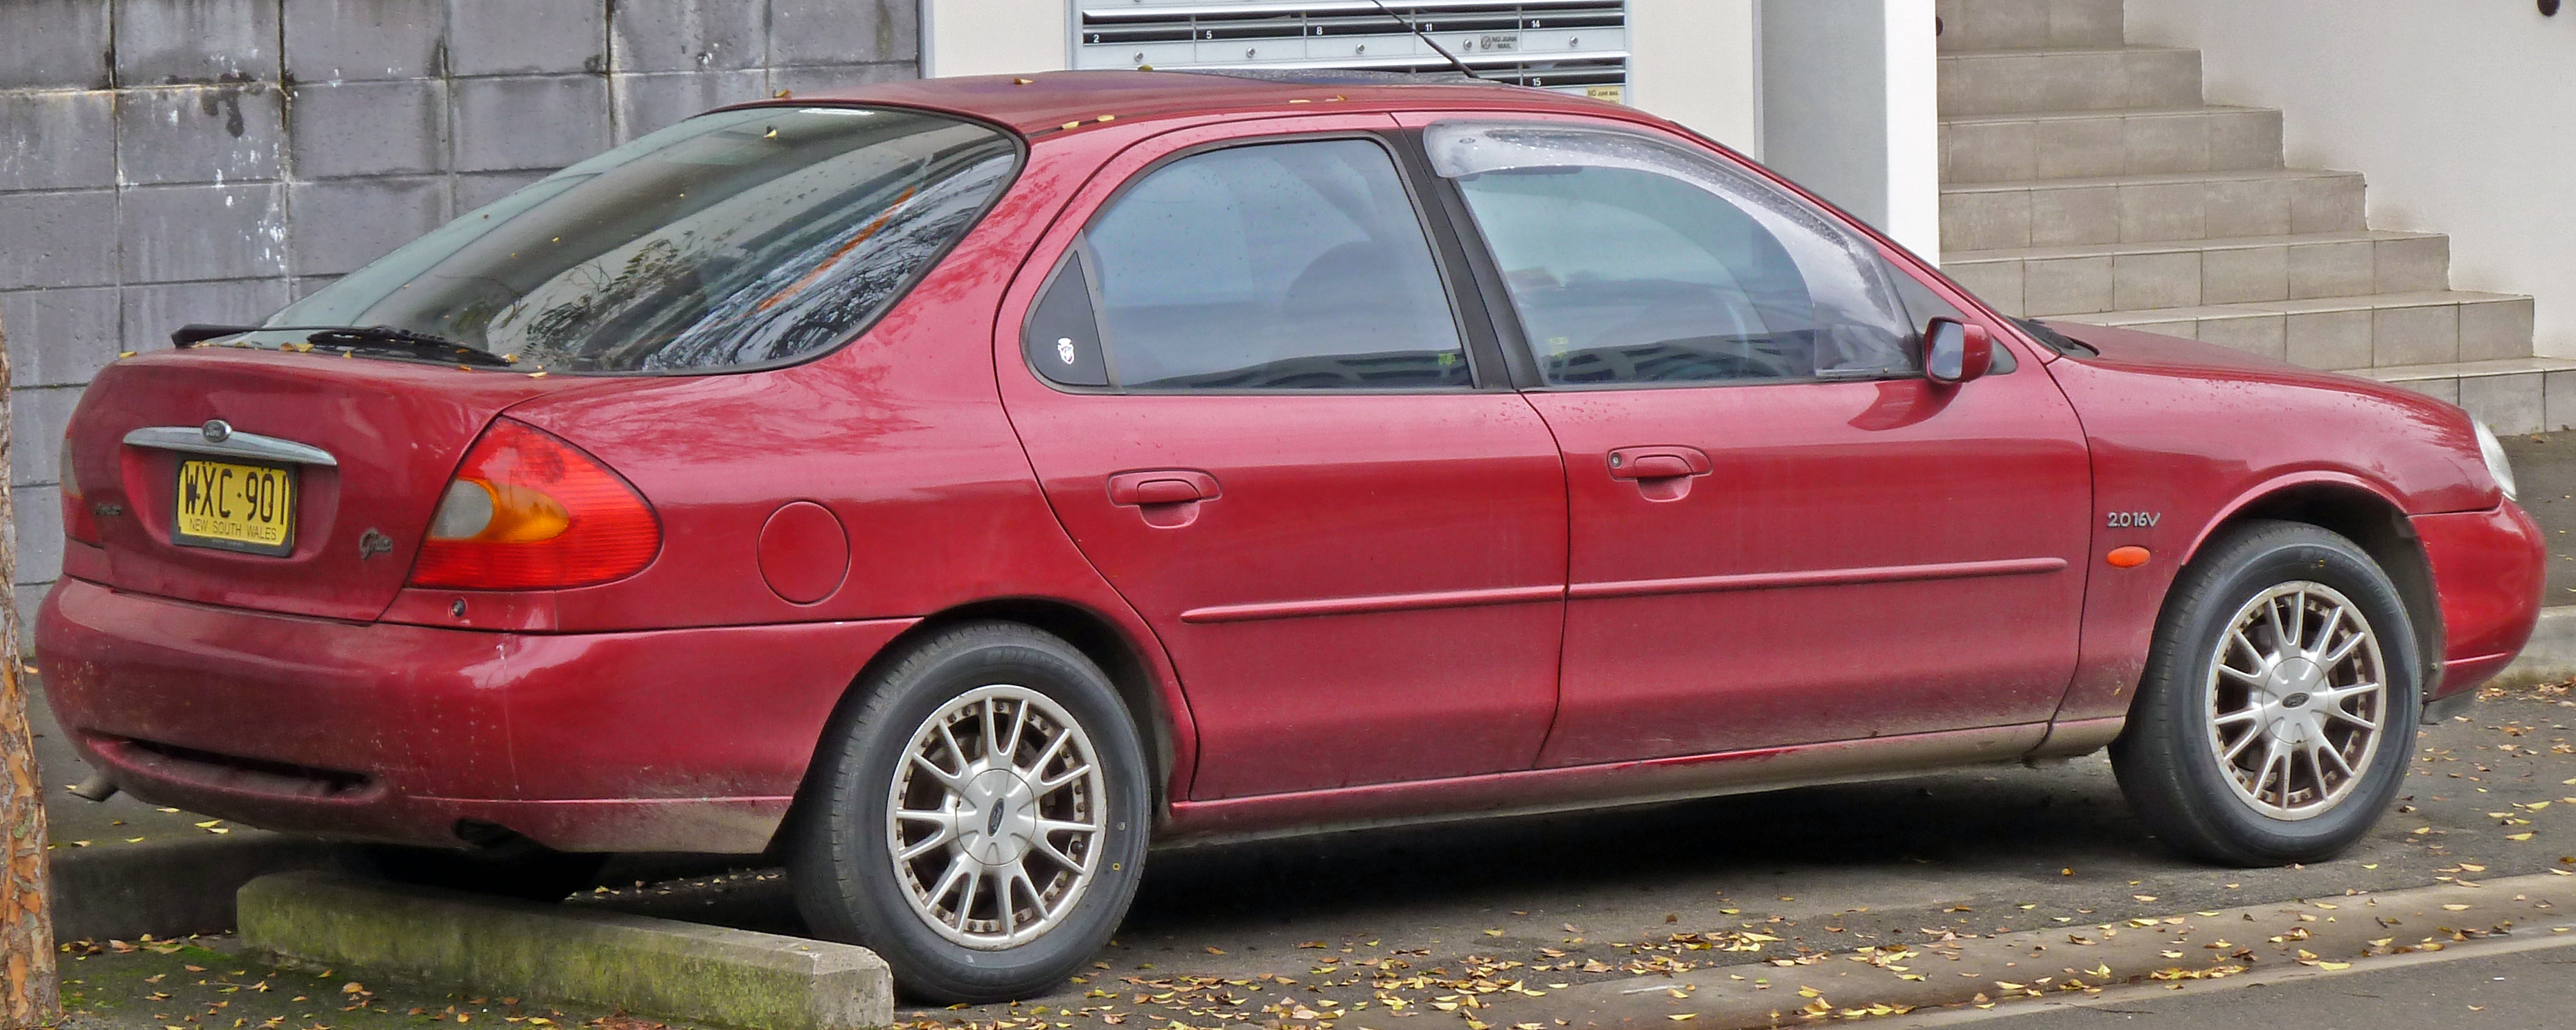 Ford Mondeo II 1996 - 2000 Liftback #4